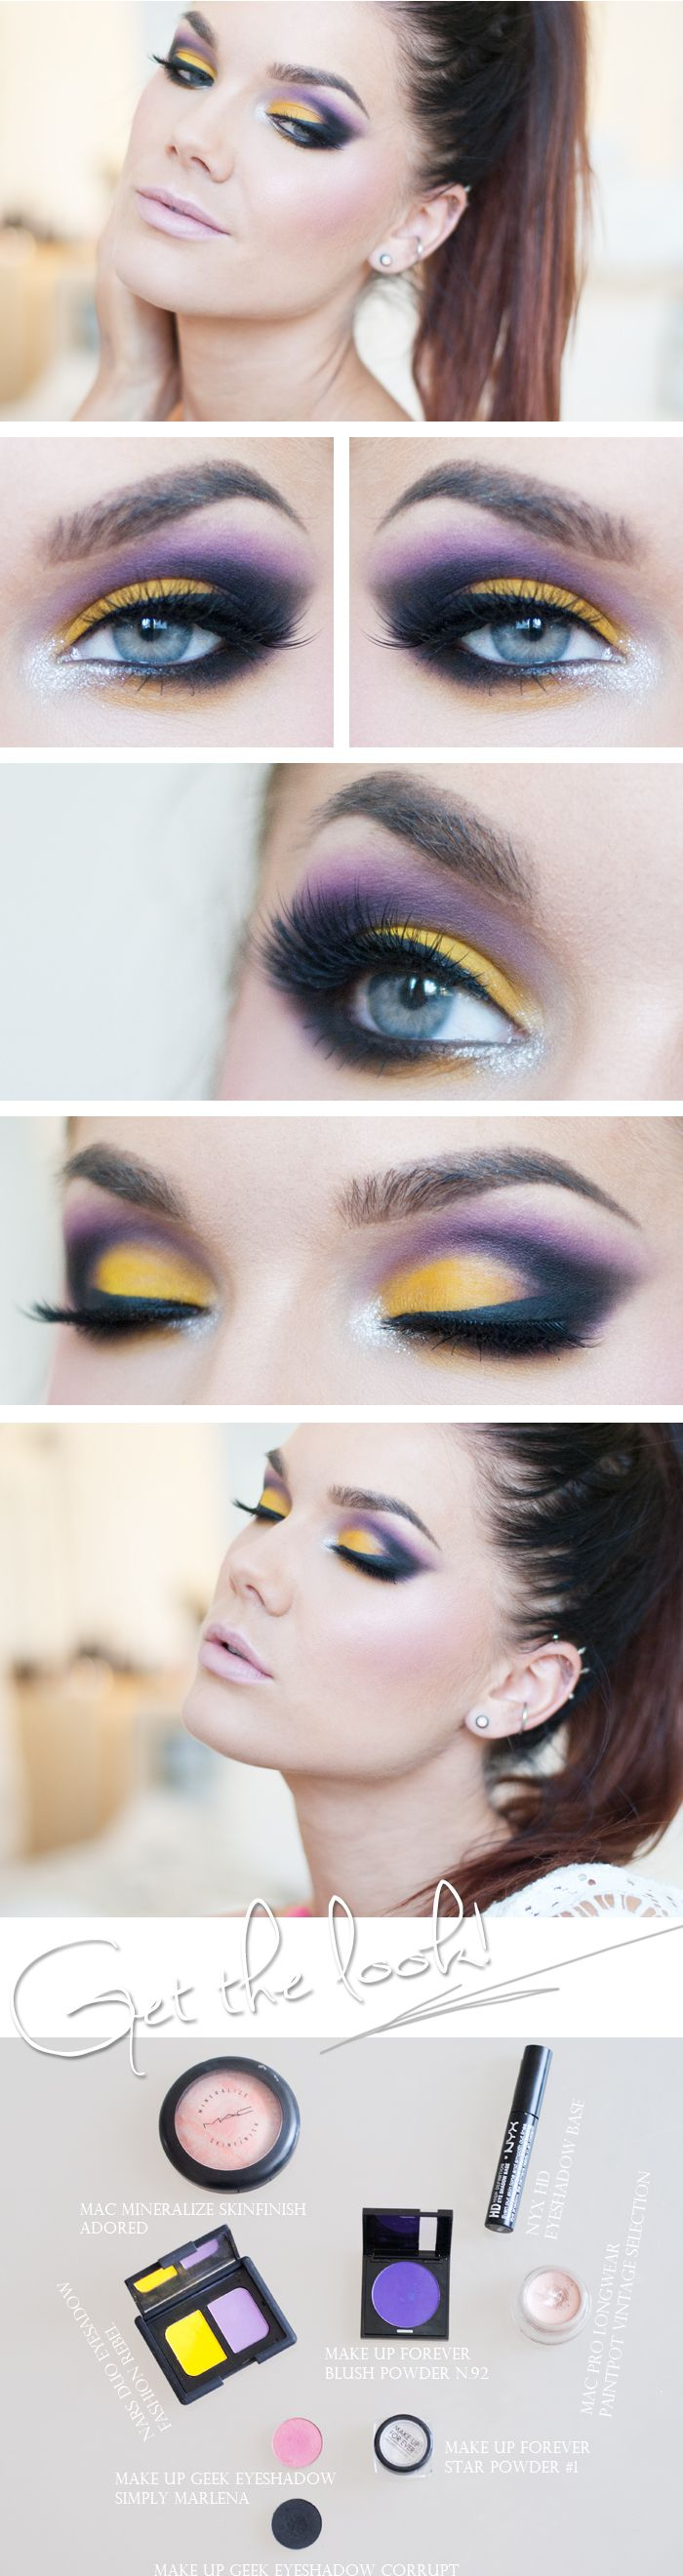 "Today's Look : ""Valerie Vixen Species"" -Linda Hallberg (Love this look! Violet and Yellow pack a powerful punch in this eye look. What a gorgeous color smokey eye.) 07/12/13NYX HD eyeshadow base  NARS duo eyeshadow fashion rebel Makeup Forever Blush powder n.92Makeup geek eyeshadow Corrup Makeup geek eyeshadow Simply MarlenaMAC Pro long wear paint pot Vintage selection"